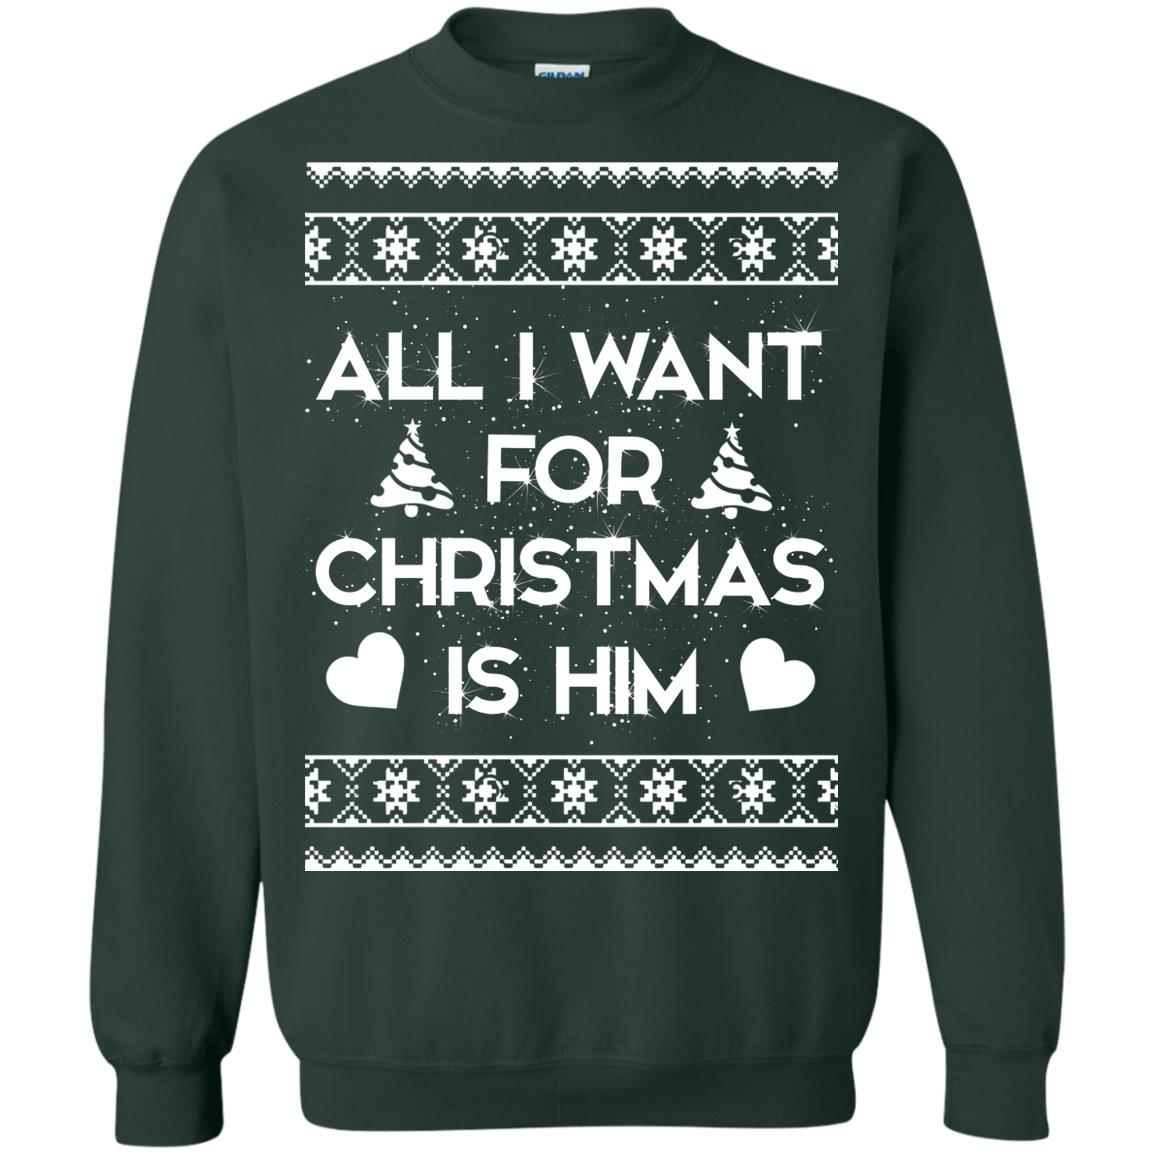 image 2380 - Couple Sweatshirt: All I Want For Christmas Is Him Ugly Sweater, Shirt